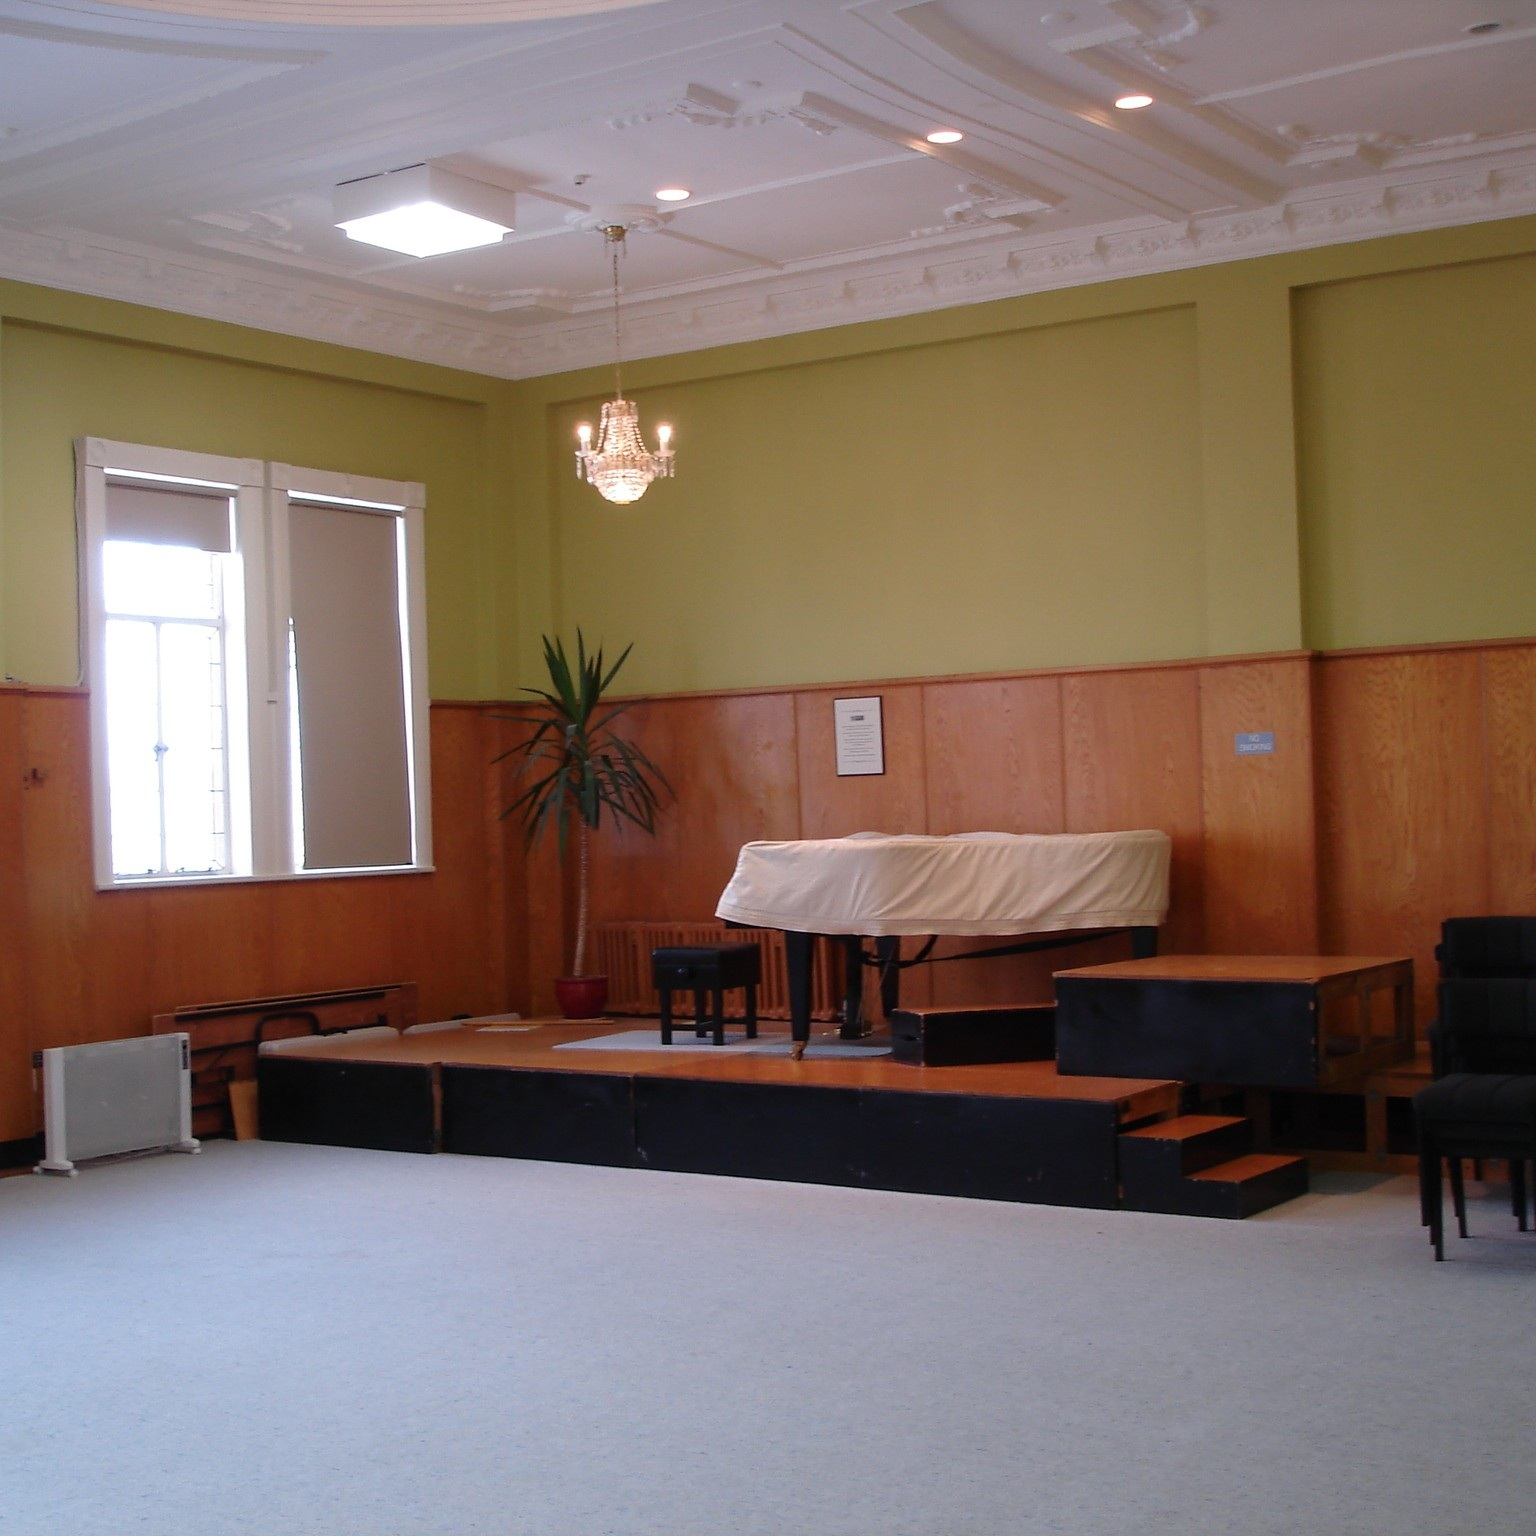 EVELYN RAWLINS ROOM   Suitable for: Arts workshops, performing arts, rehearsals and events Capacity: 200 Hire rate: From $15 per hour. Daily and event rates are available.  More info >